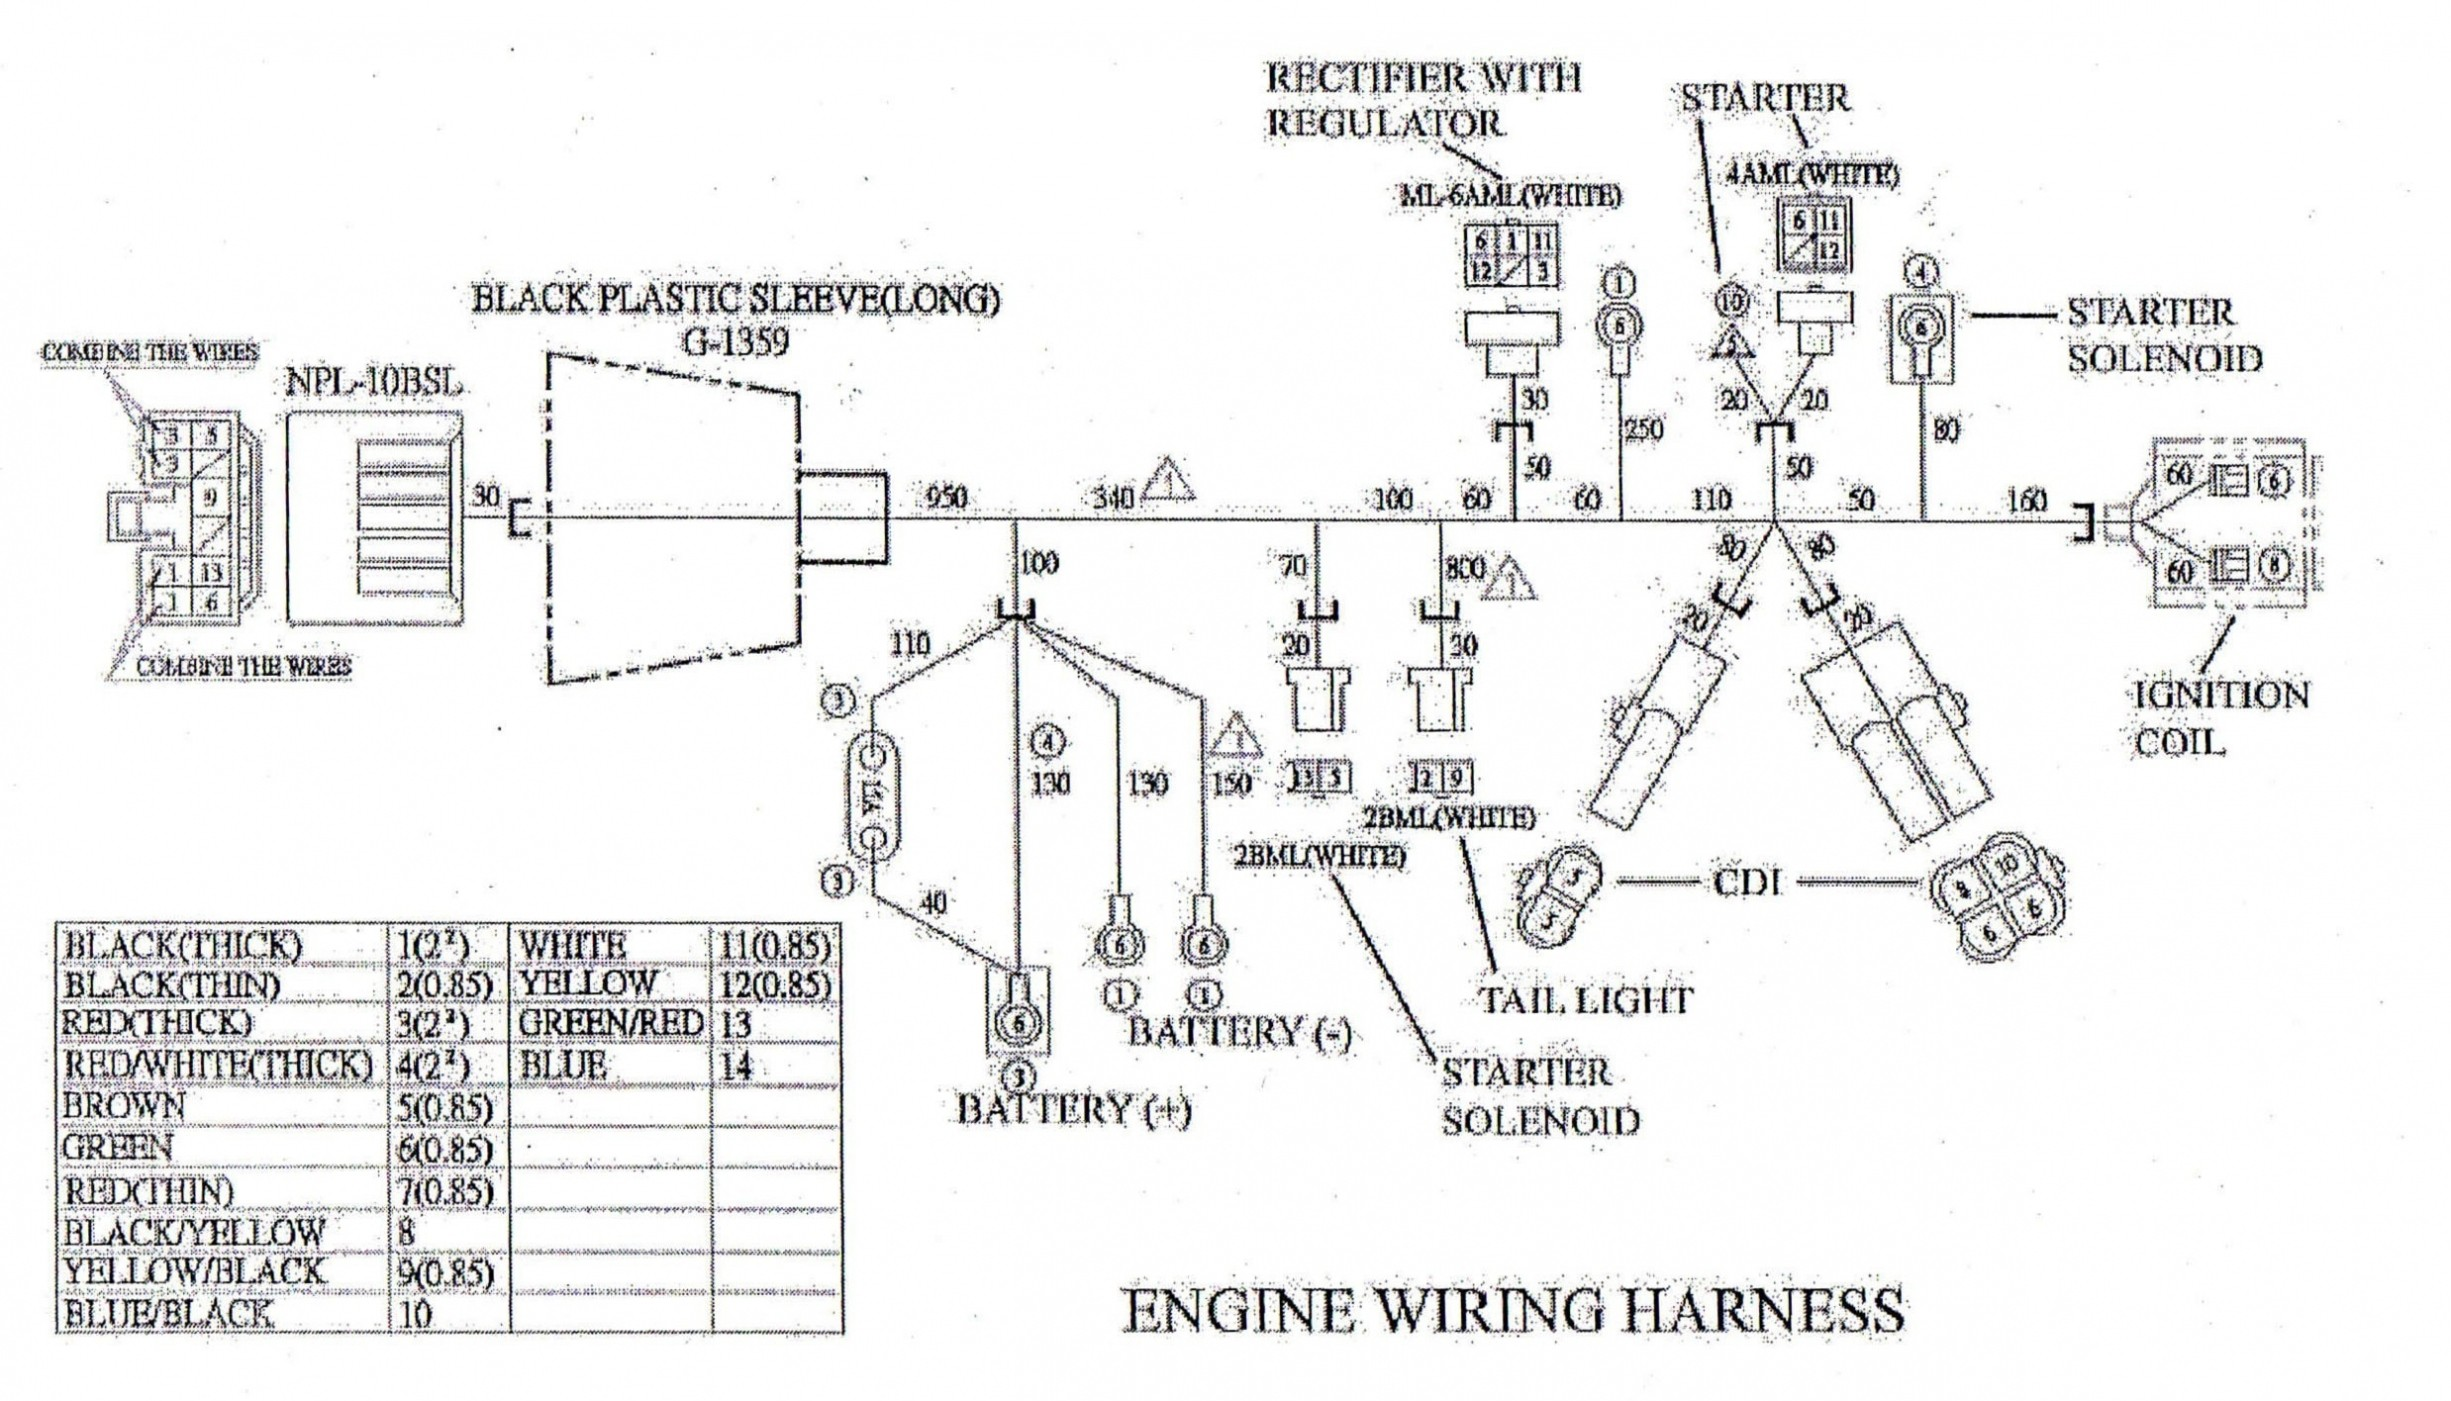 Abs System Diagrm Diagram] 99 Ranger Abs Wiring Diagram Full Version Hd Of Abs System Diagrm